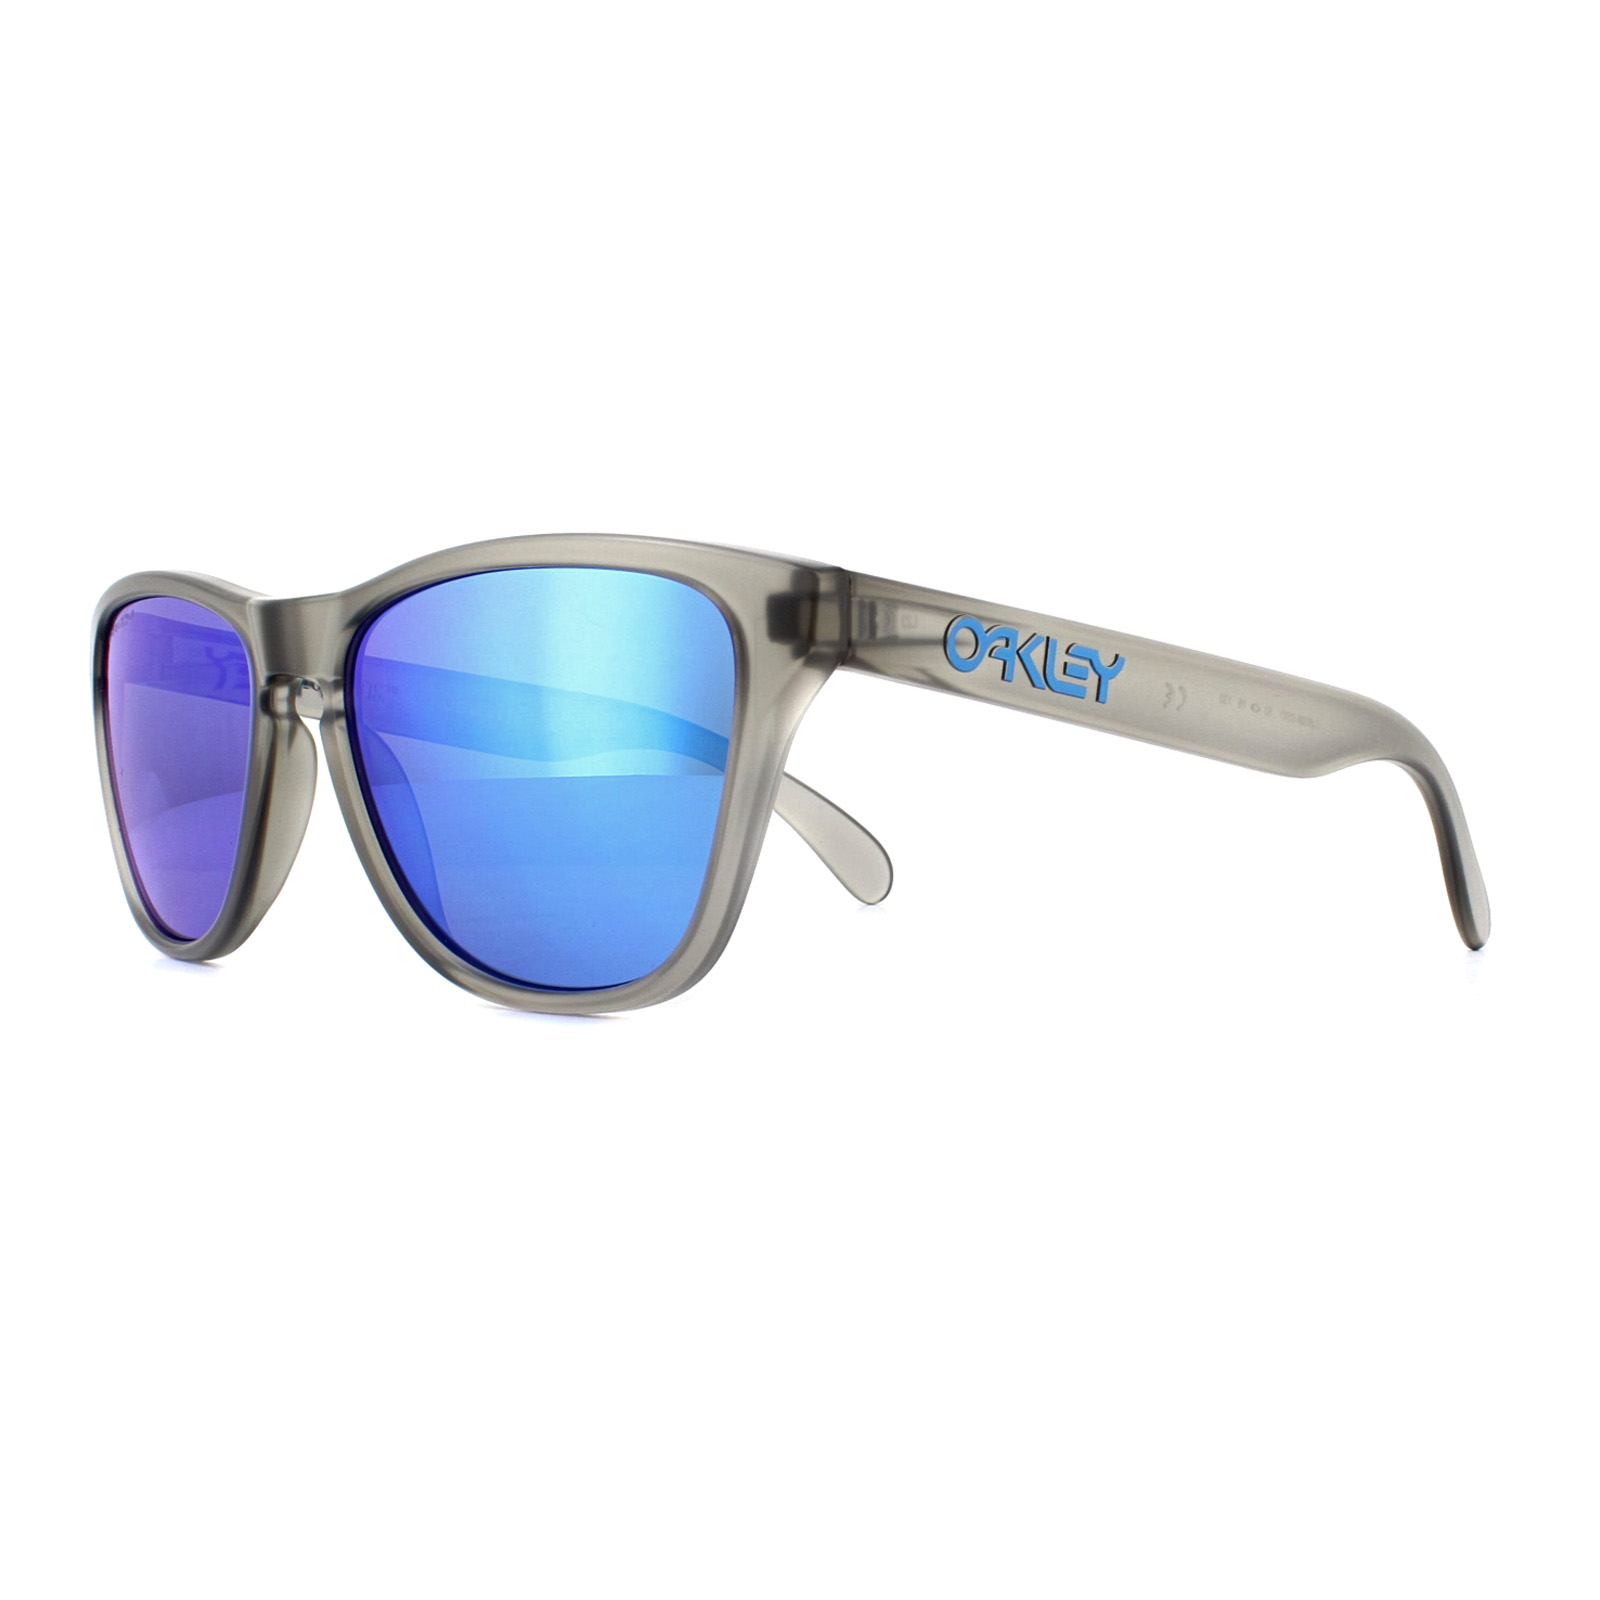 9d040c5aa717c Cheap Oakley Frogskins XS Sunglasses - Discounted Sunglasses